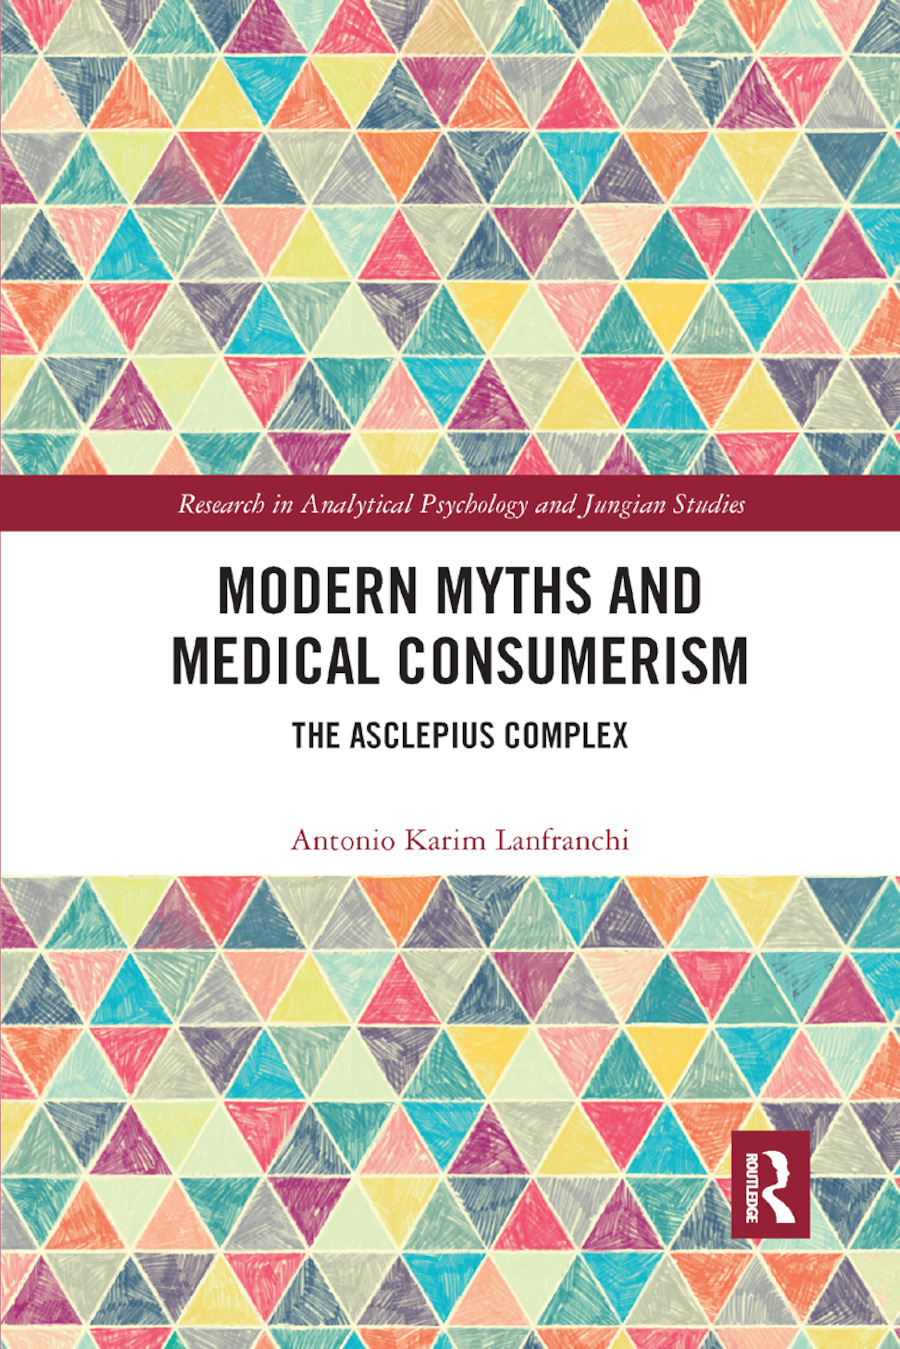 Modern Myths and Medical Consumerism: The Asclepius Complex book cover